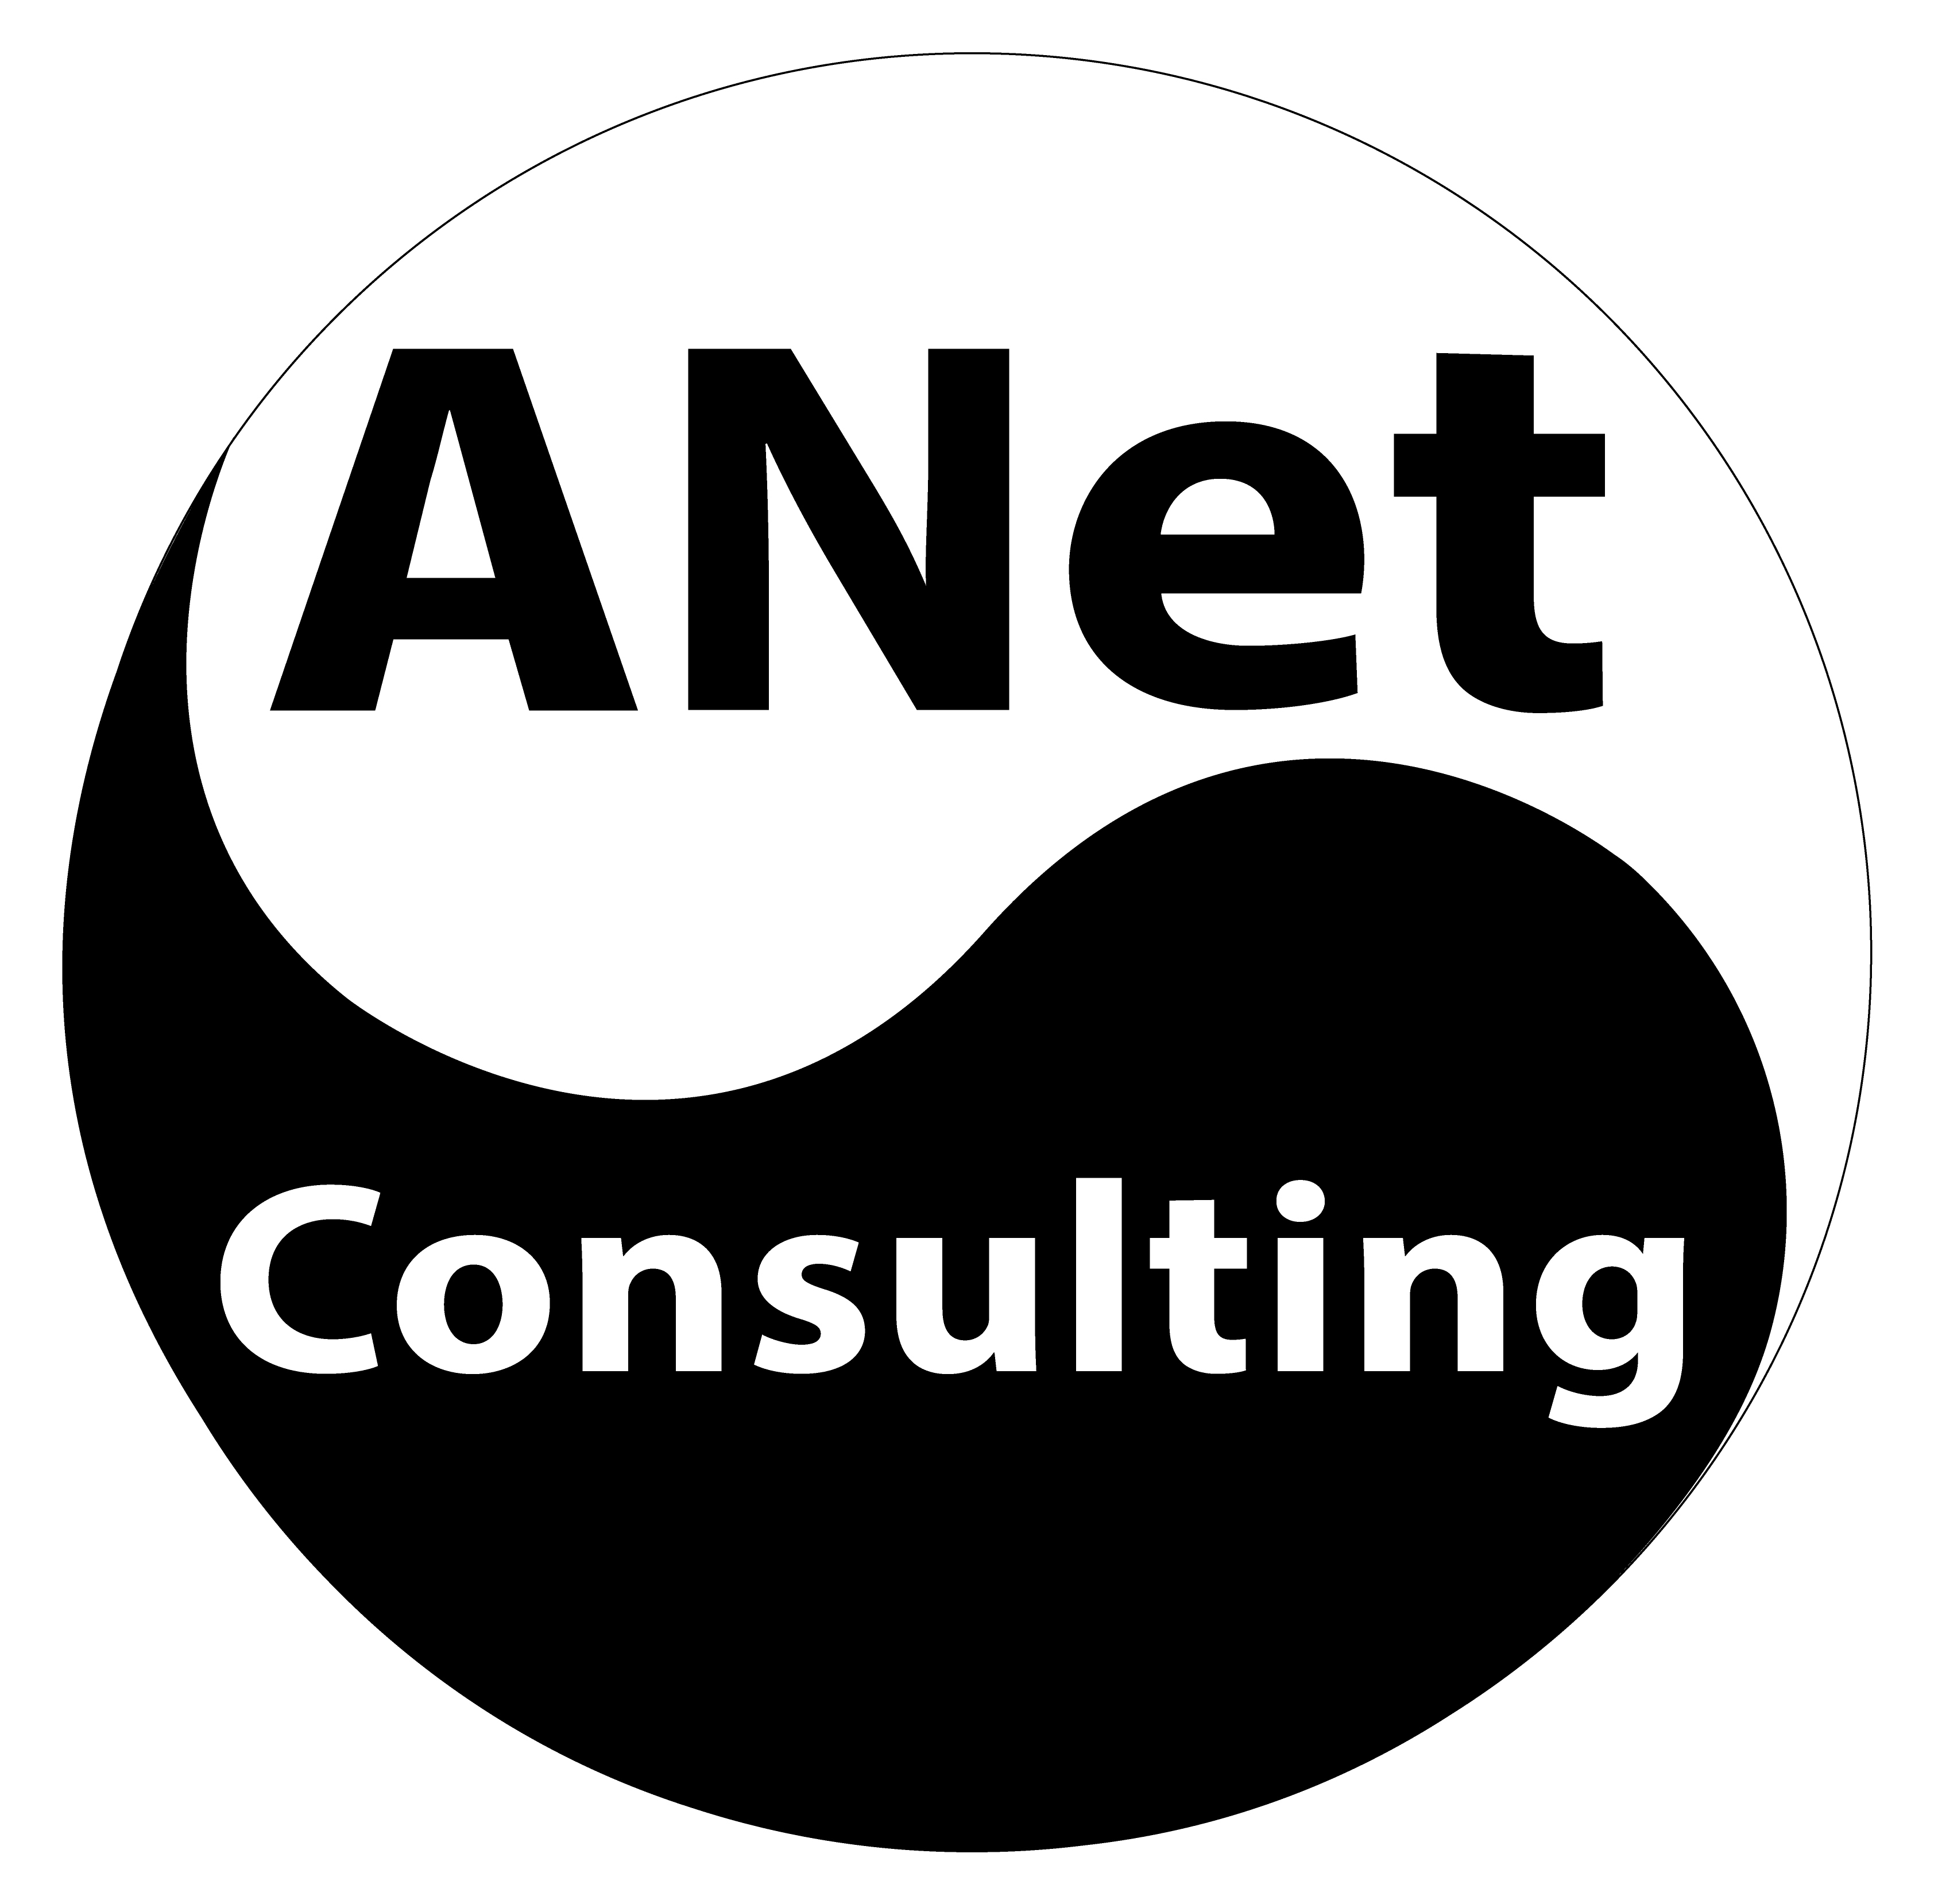 ANet Consulting